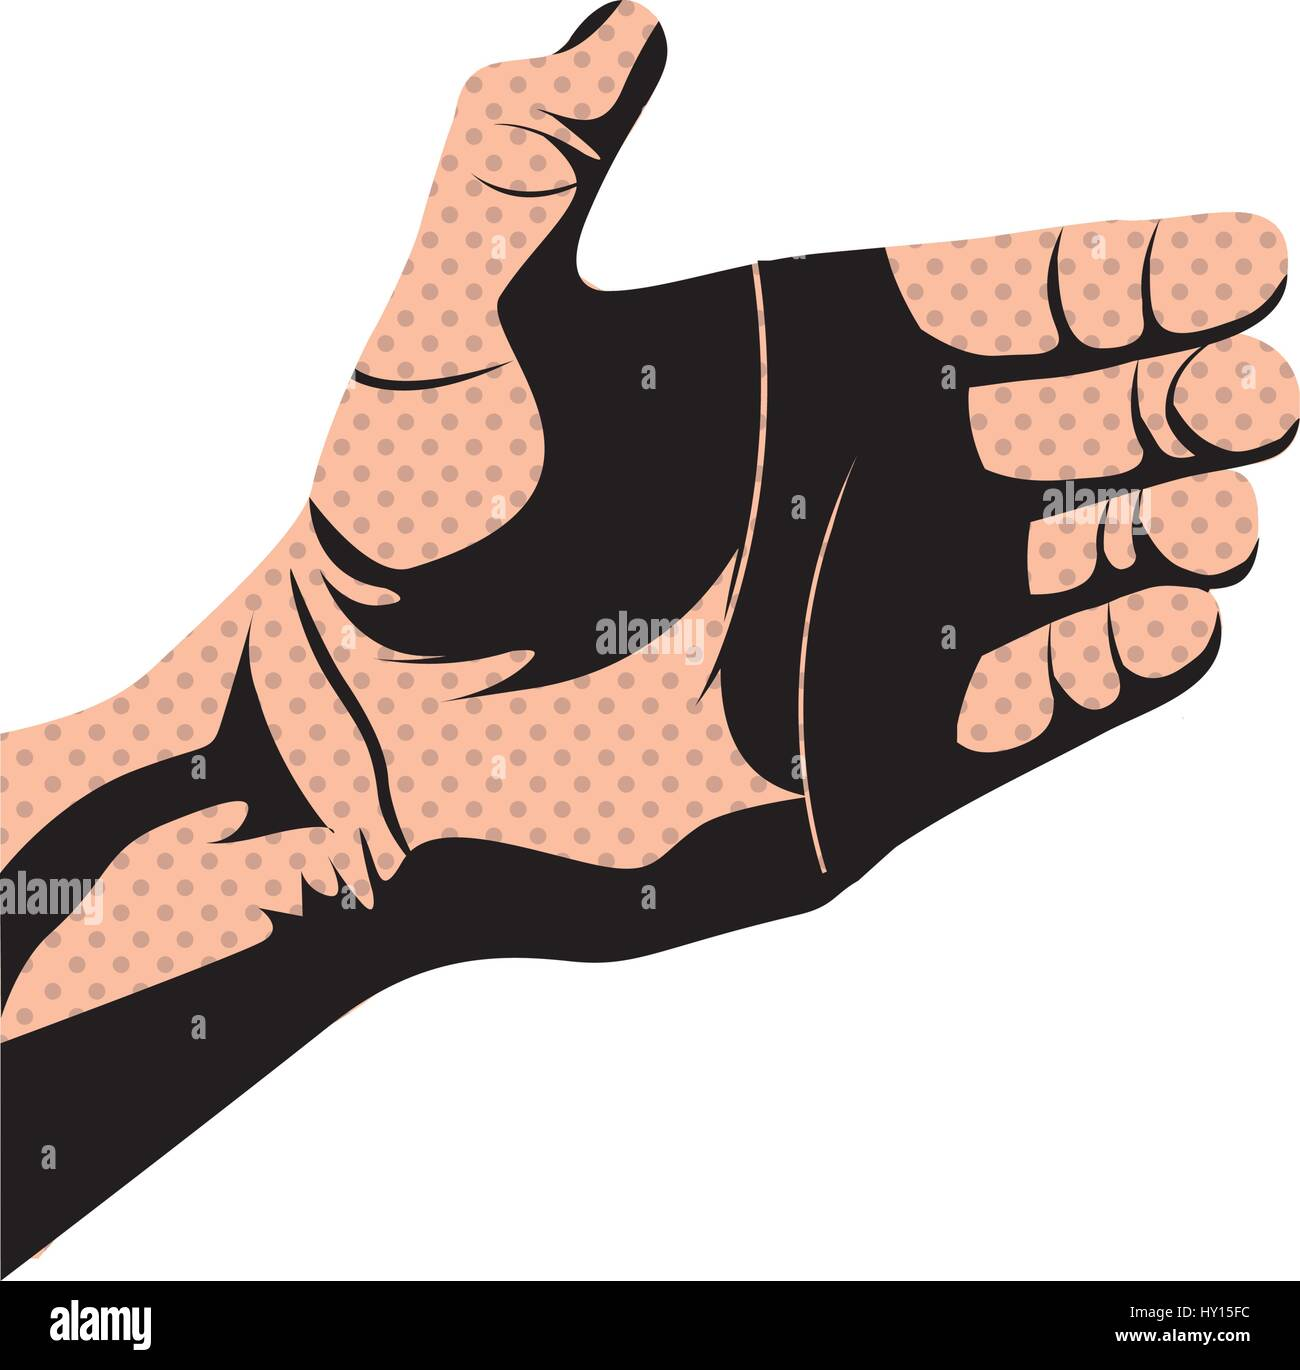 silhouette dotted skin color right hand holding something - Stock Vector